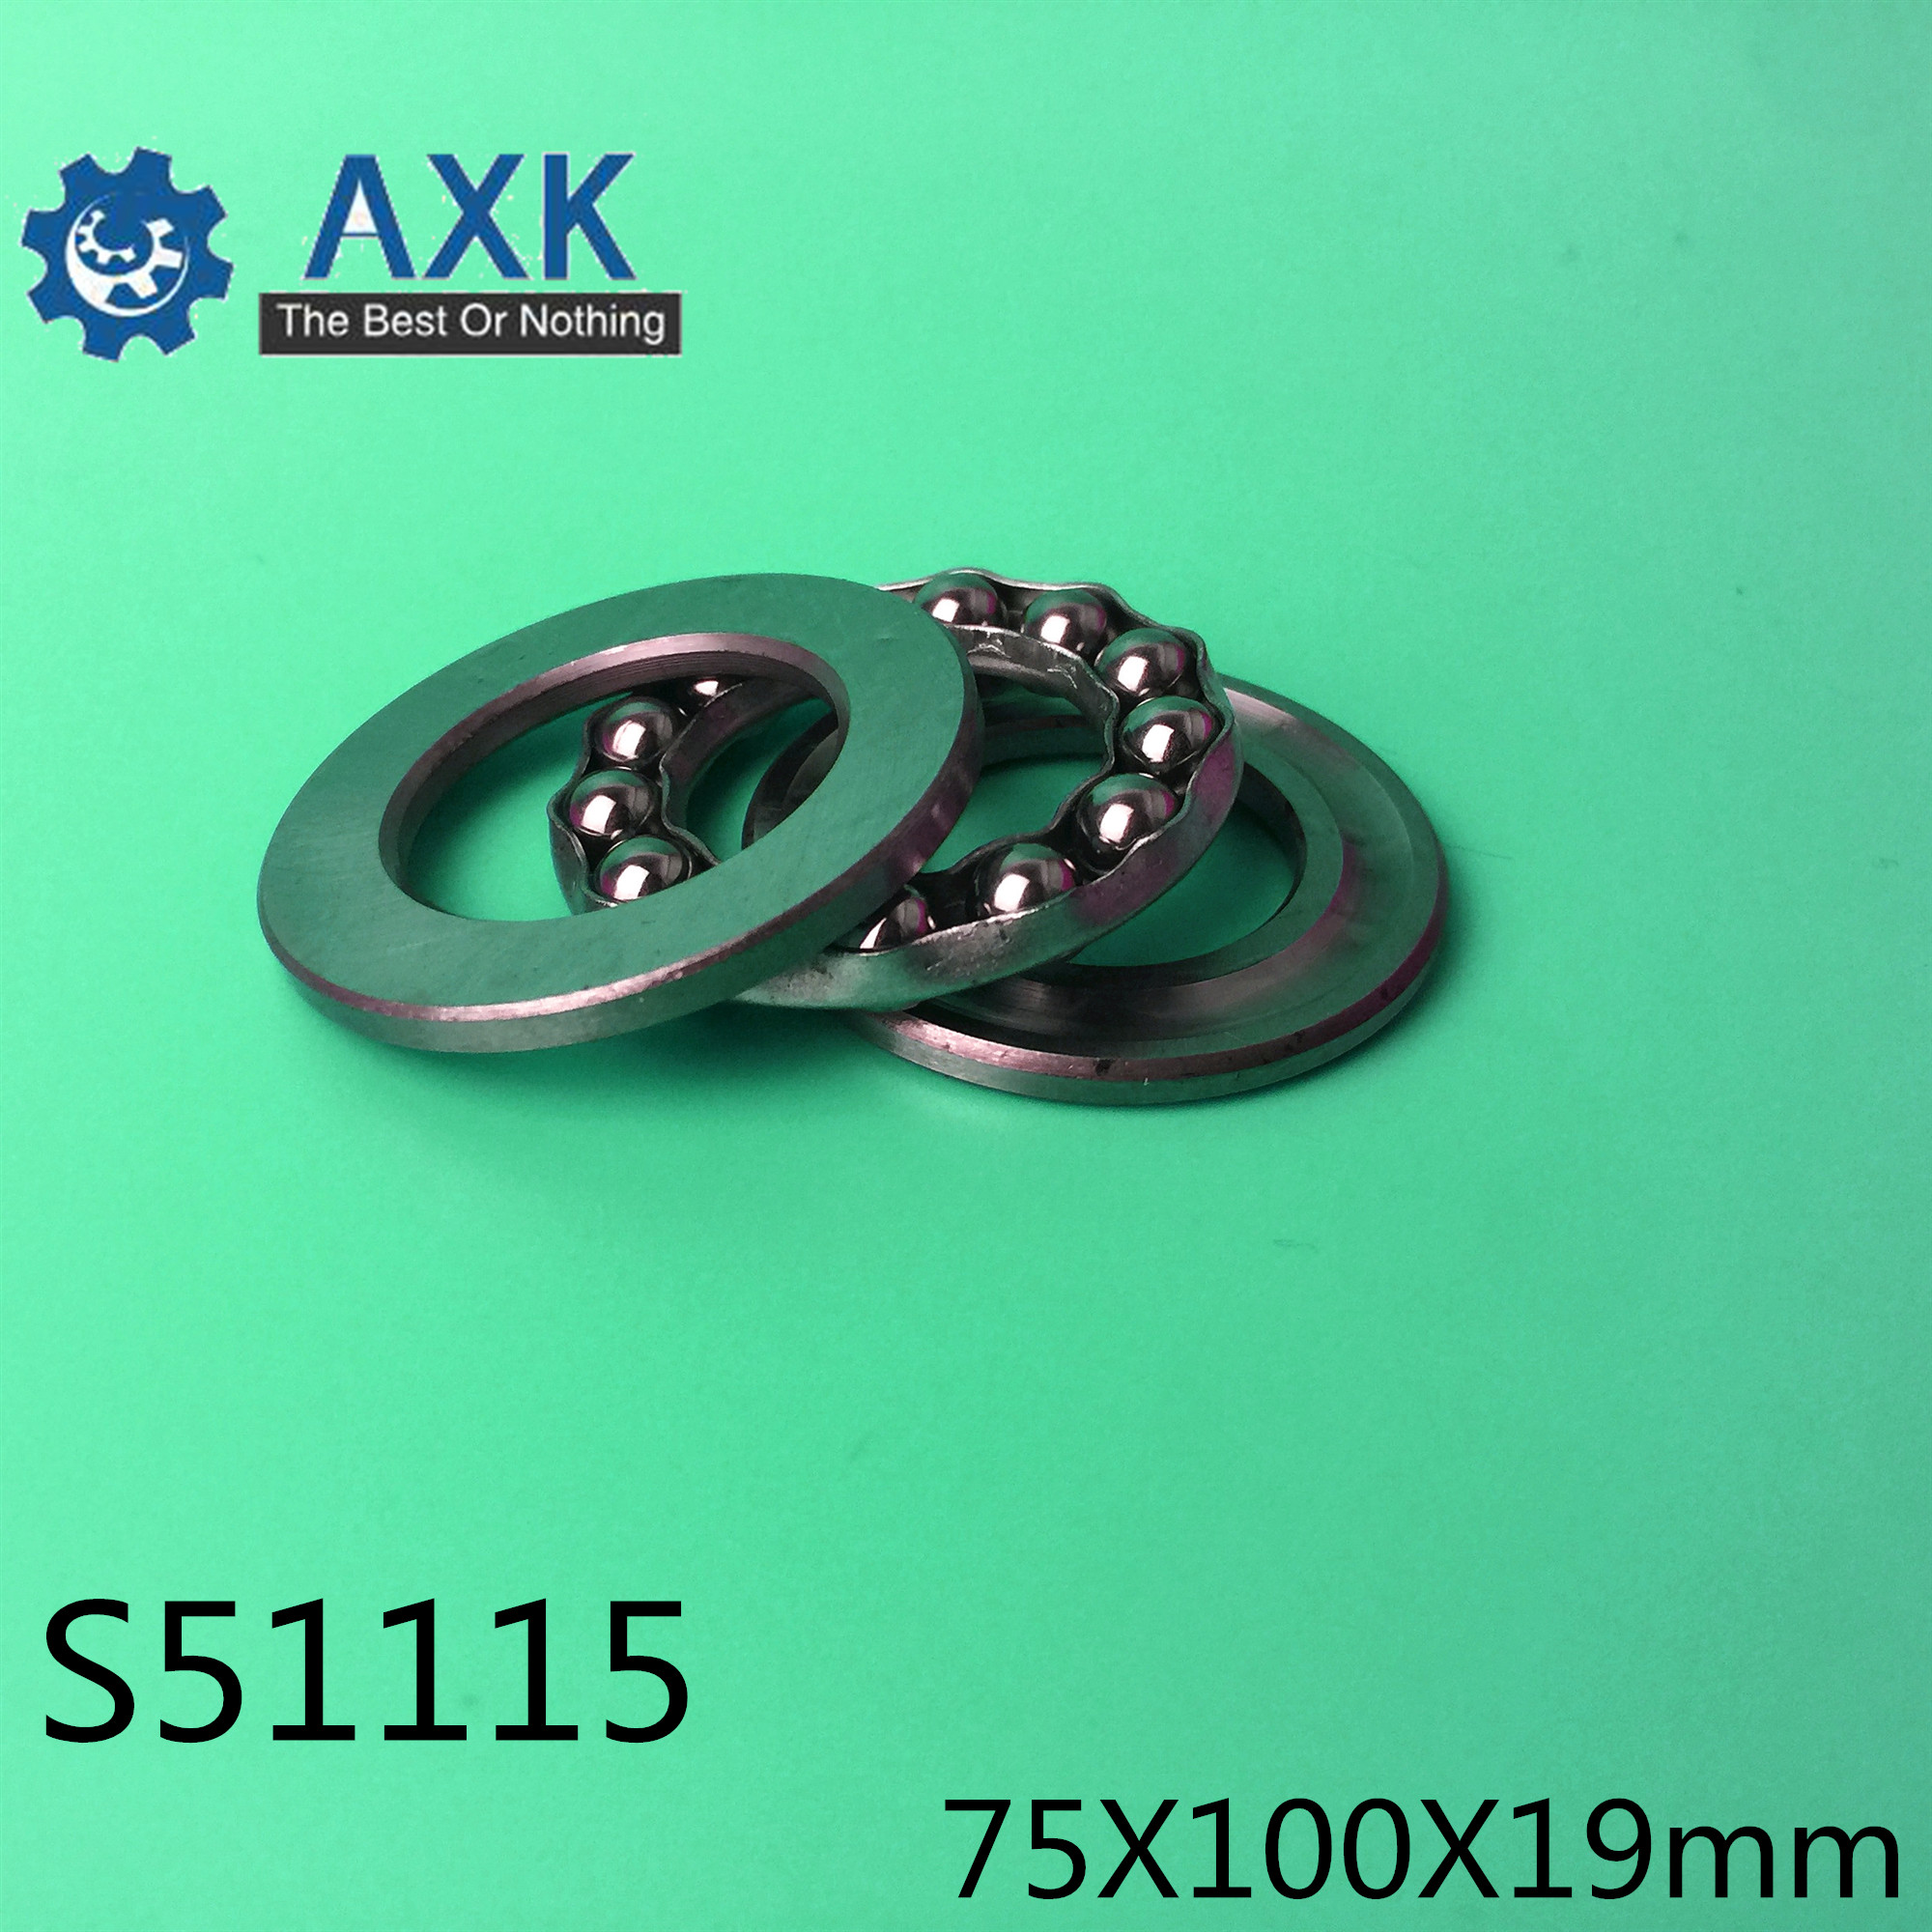 S51115 Bearing 75*100*19 mm ( 1PC ) ABEC-1 Stainless Steel Thrust S 51115 Ball BearingsS51115 Bearing 75*100*19 mm ( 1PC ) ABEC-1 Stainless Steel Thrust S 51115 Ball Bearings